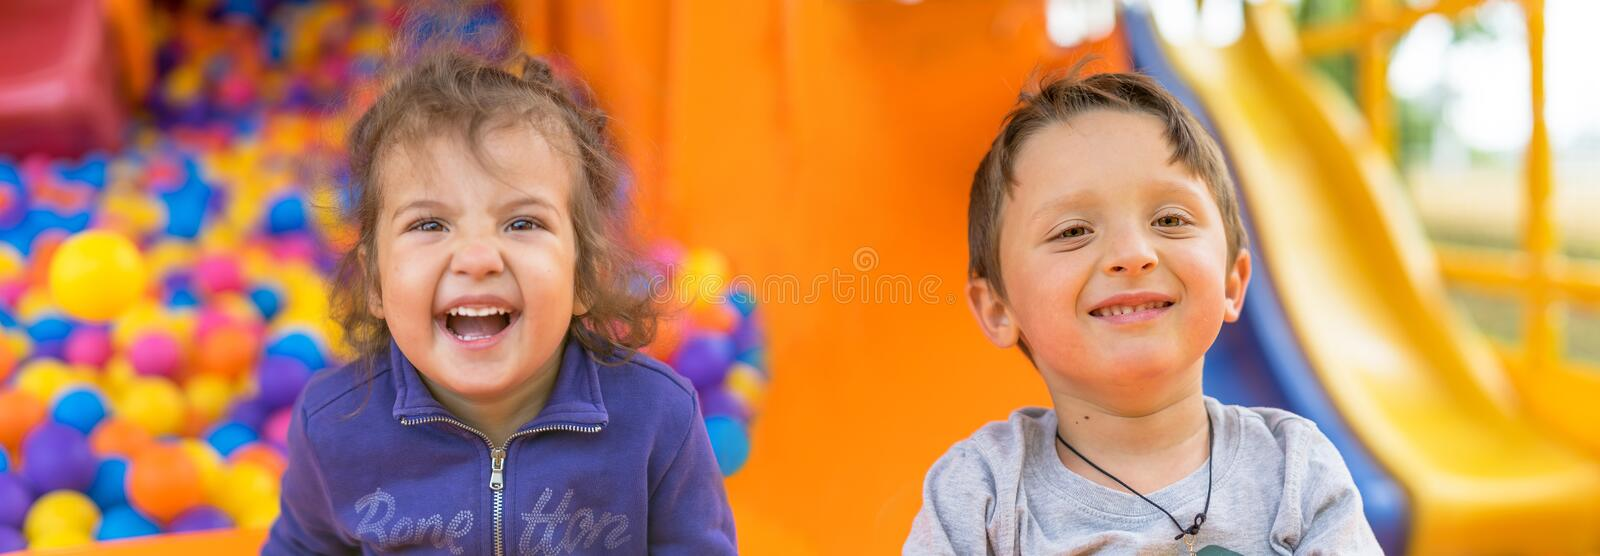 Adorable two smiling little girls and boy. Portrait. Happy child royalty free stock image